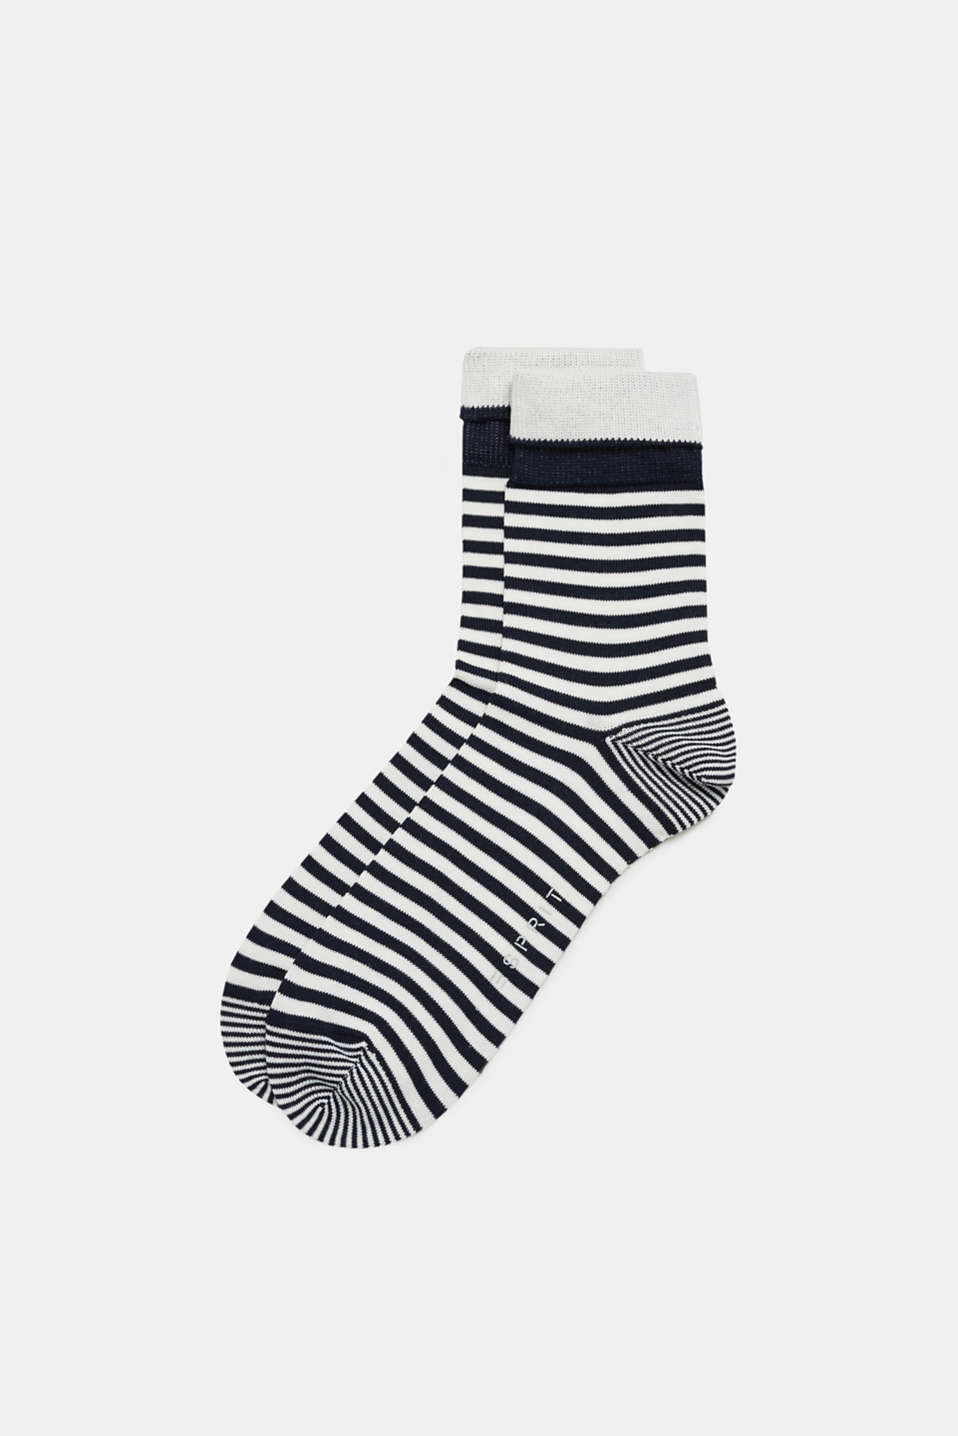 Esprit - Socks with stripes, made of blended cotton